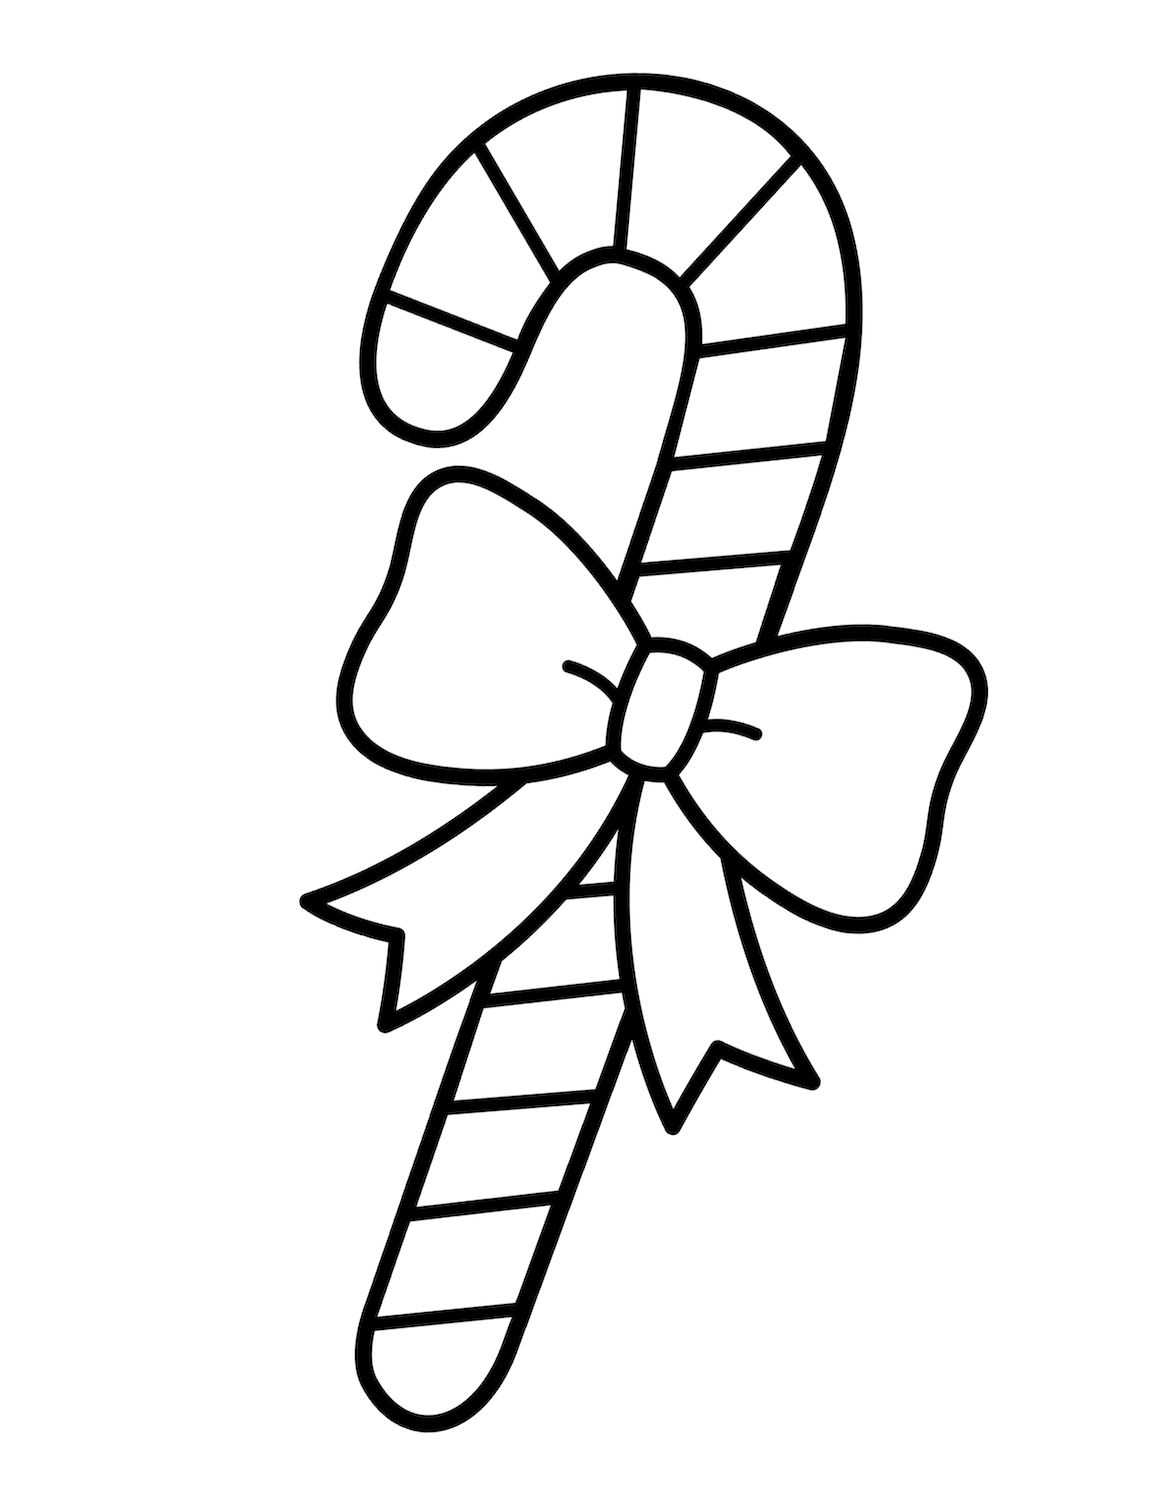 Pin On Candy Cane